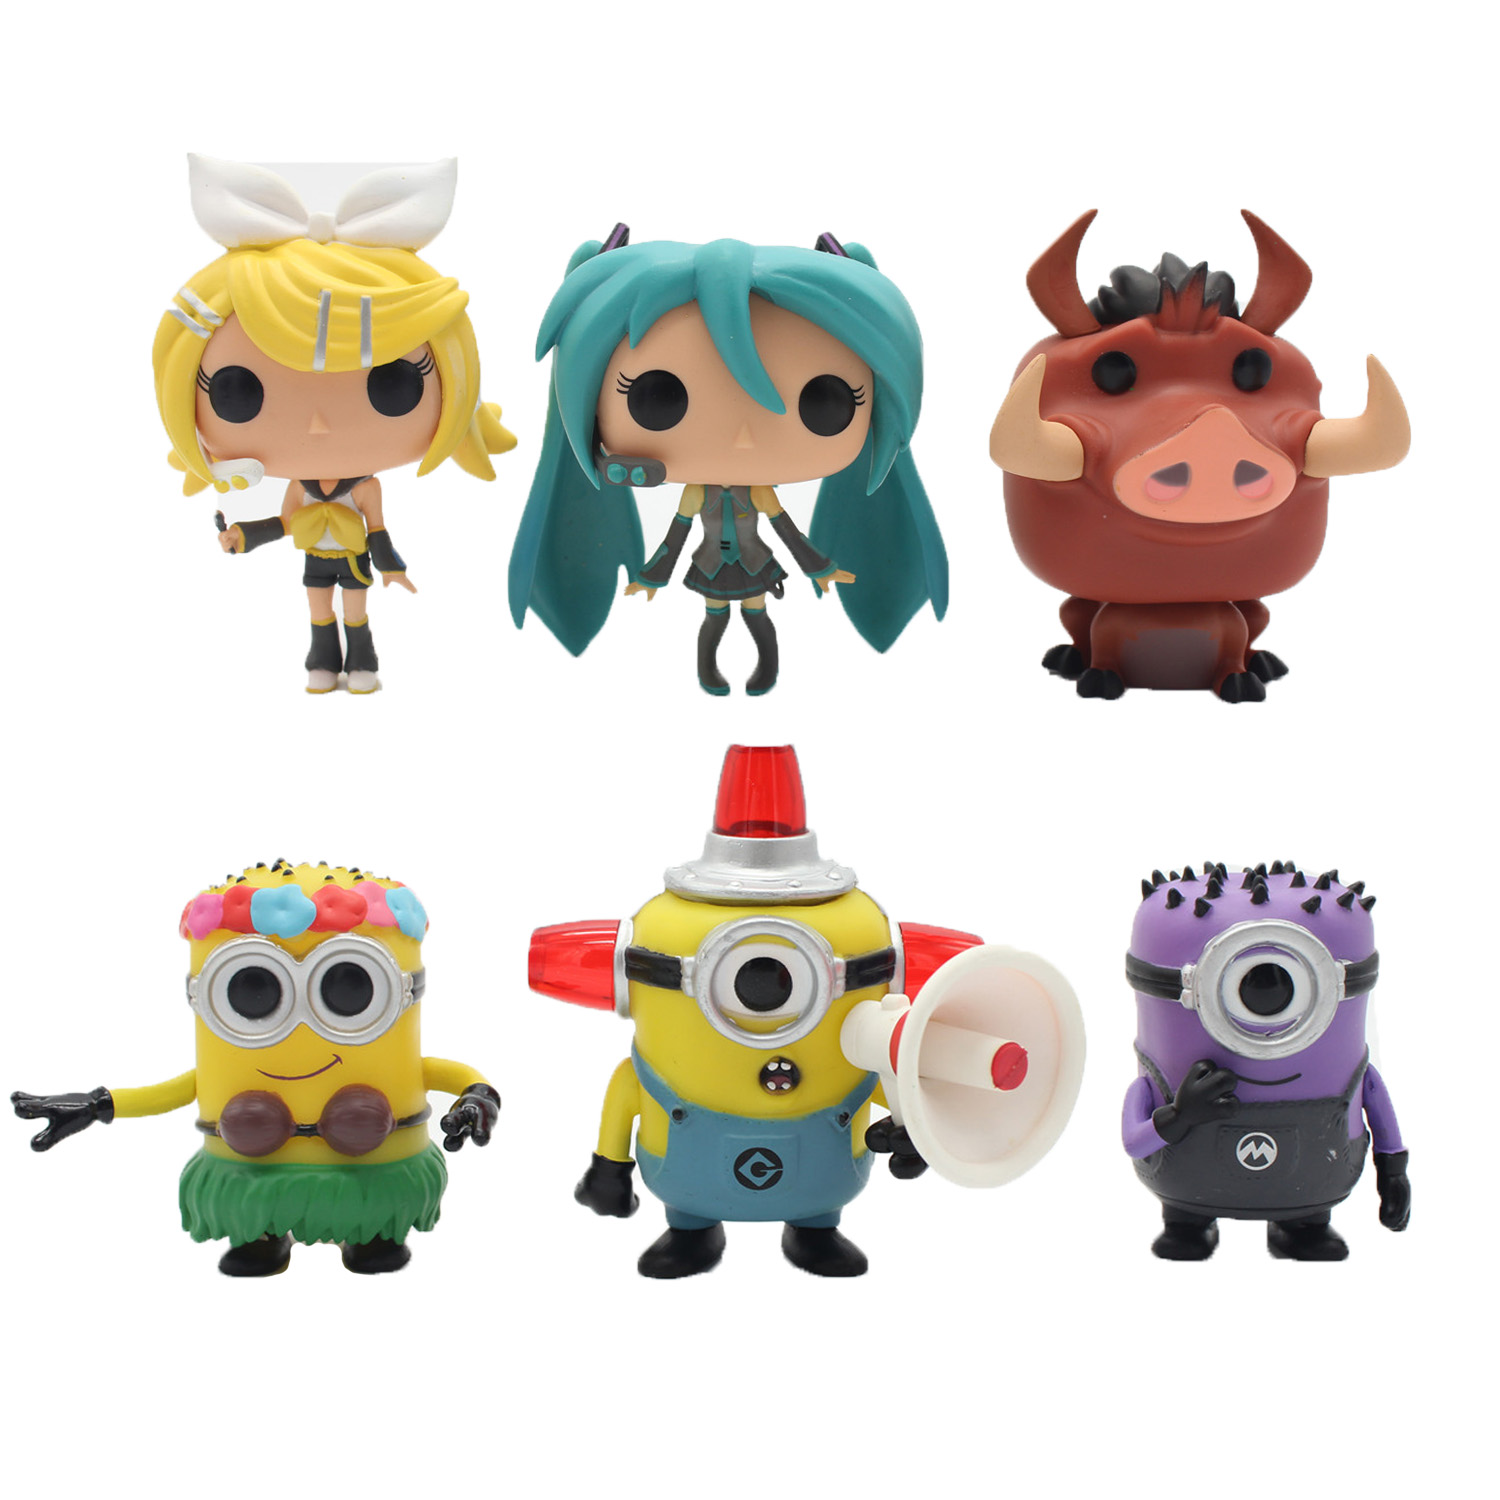 OPP 1pcs Funko Pop 7Style Minion 2015 Kevin Hello Kitty Lion King Pumbaa Natural Hula Hatsune Miku Rin/Len Vinyl Figure toy(China (Mainland))